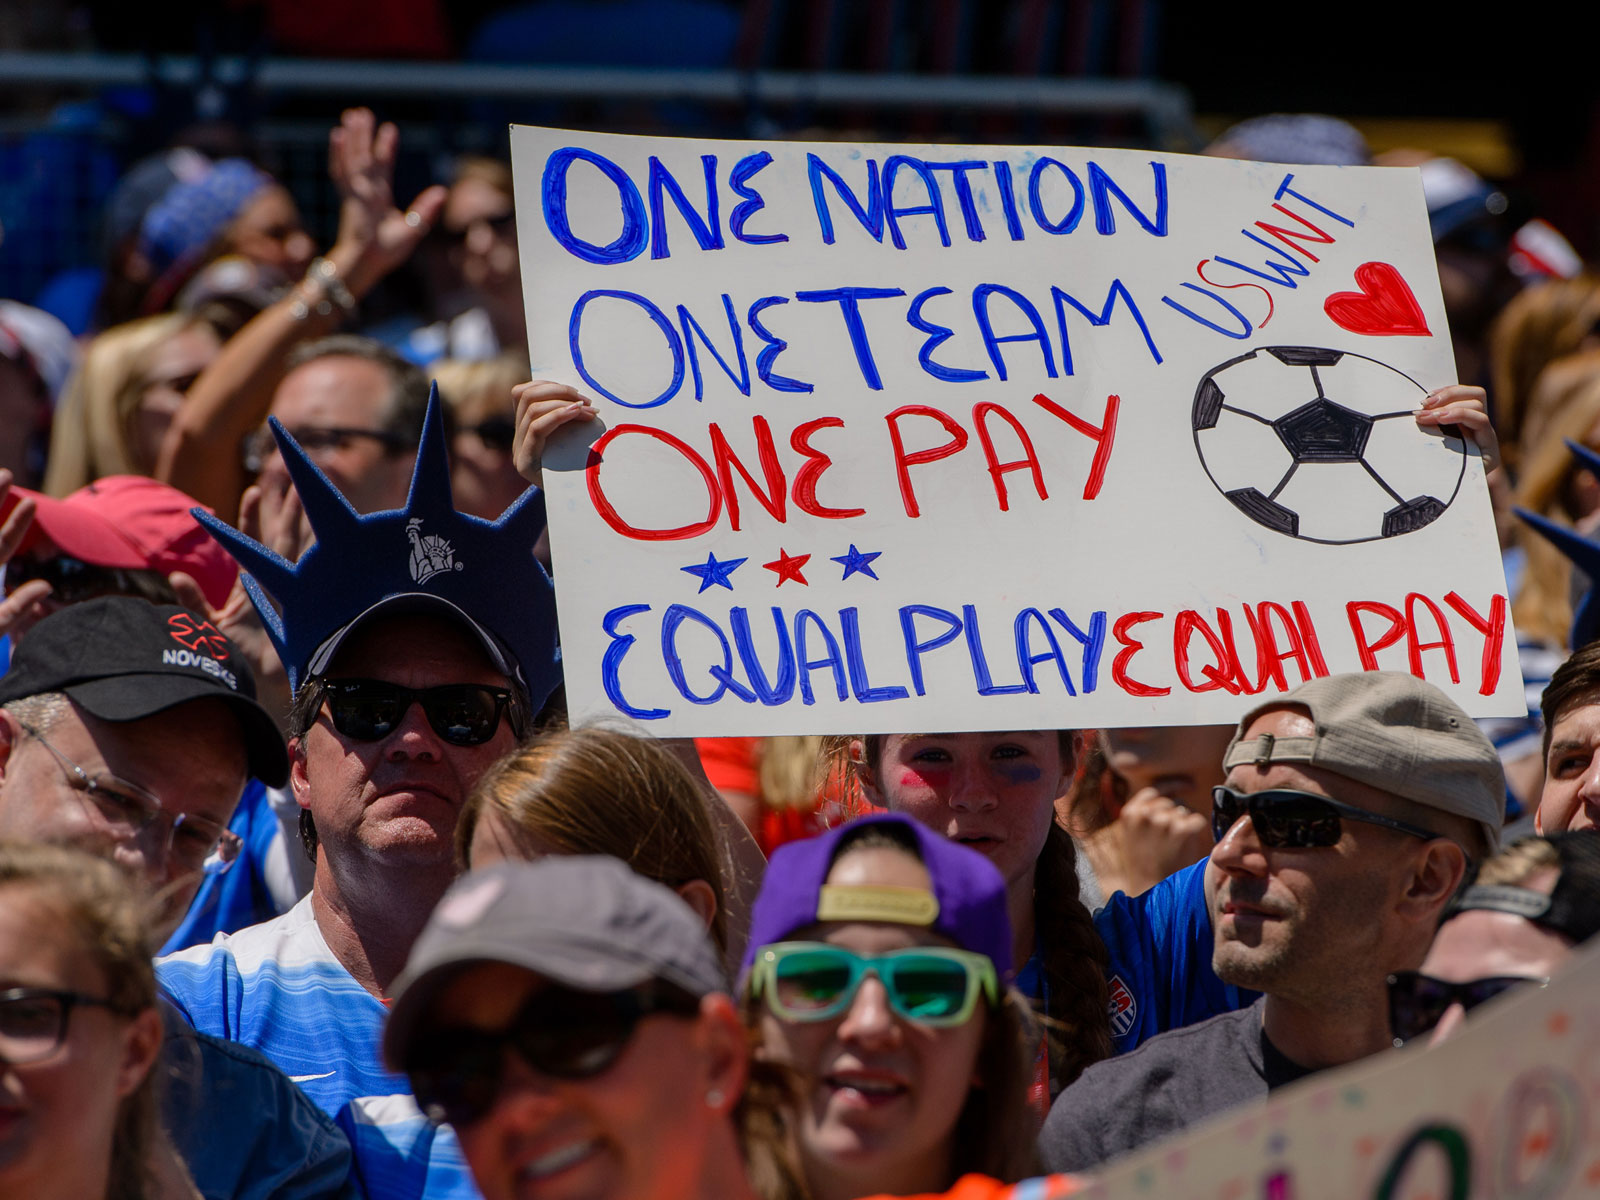 Fans in support of equal pay between the U.S. men's and women's national teams.